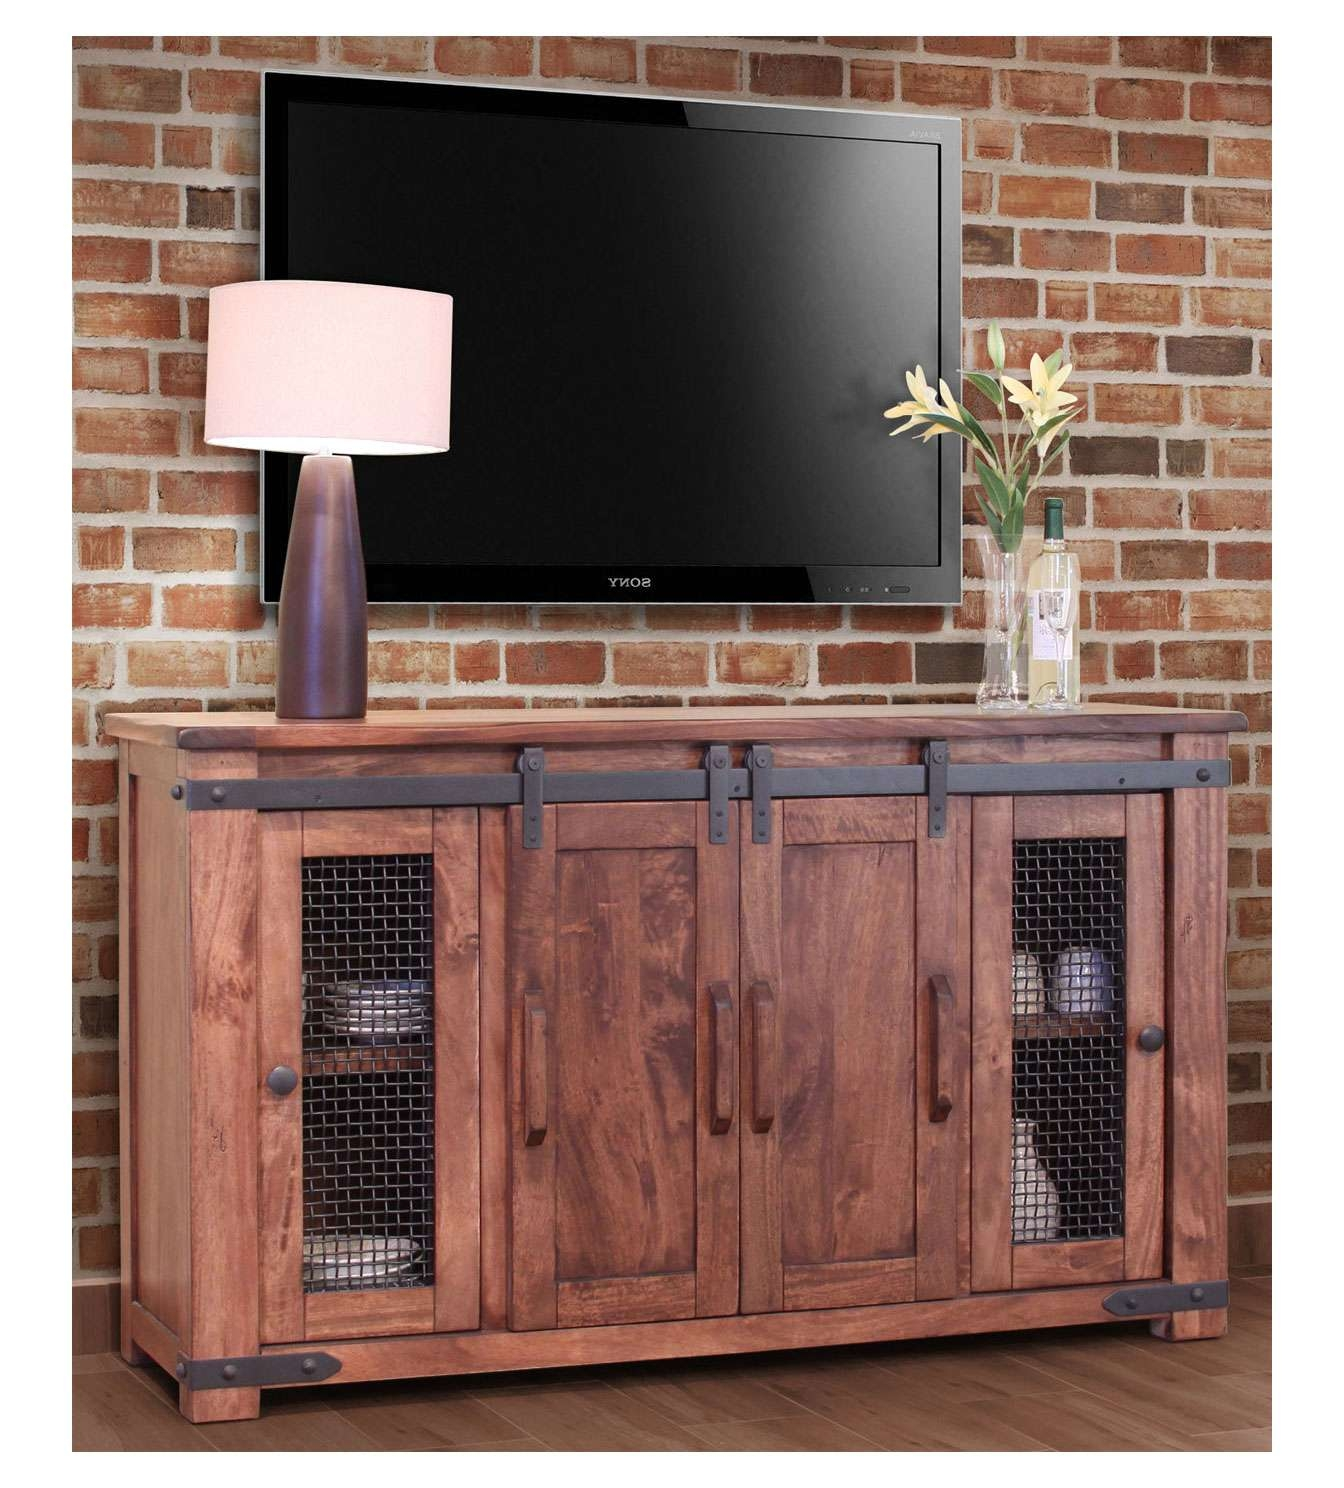 Lovely Tall Skinny Tv Stand 12 For Your Home Decorating Ideas With Within Skinny Tv Stands (View 7 of 15)